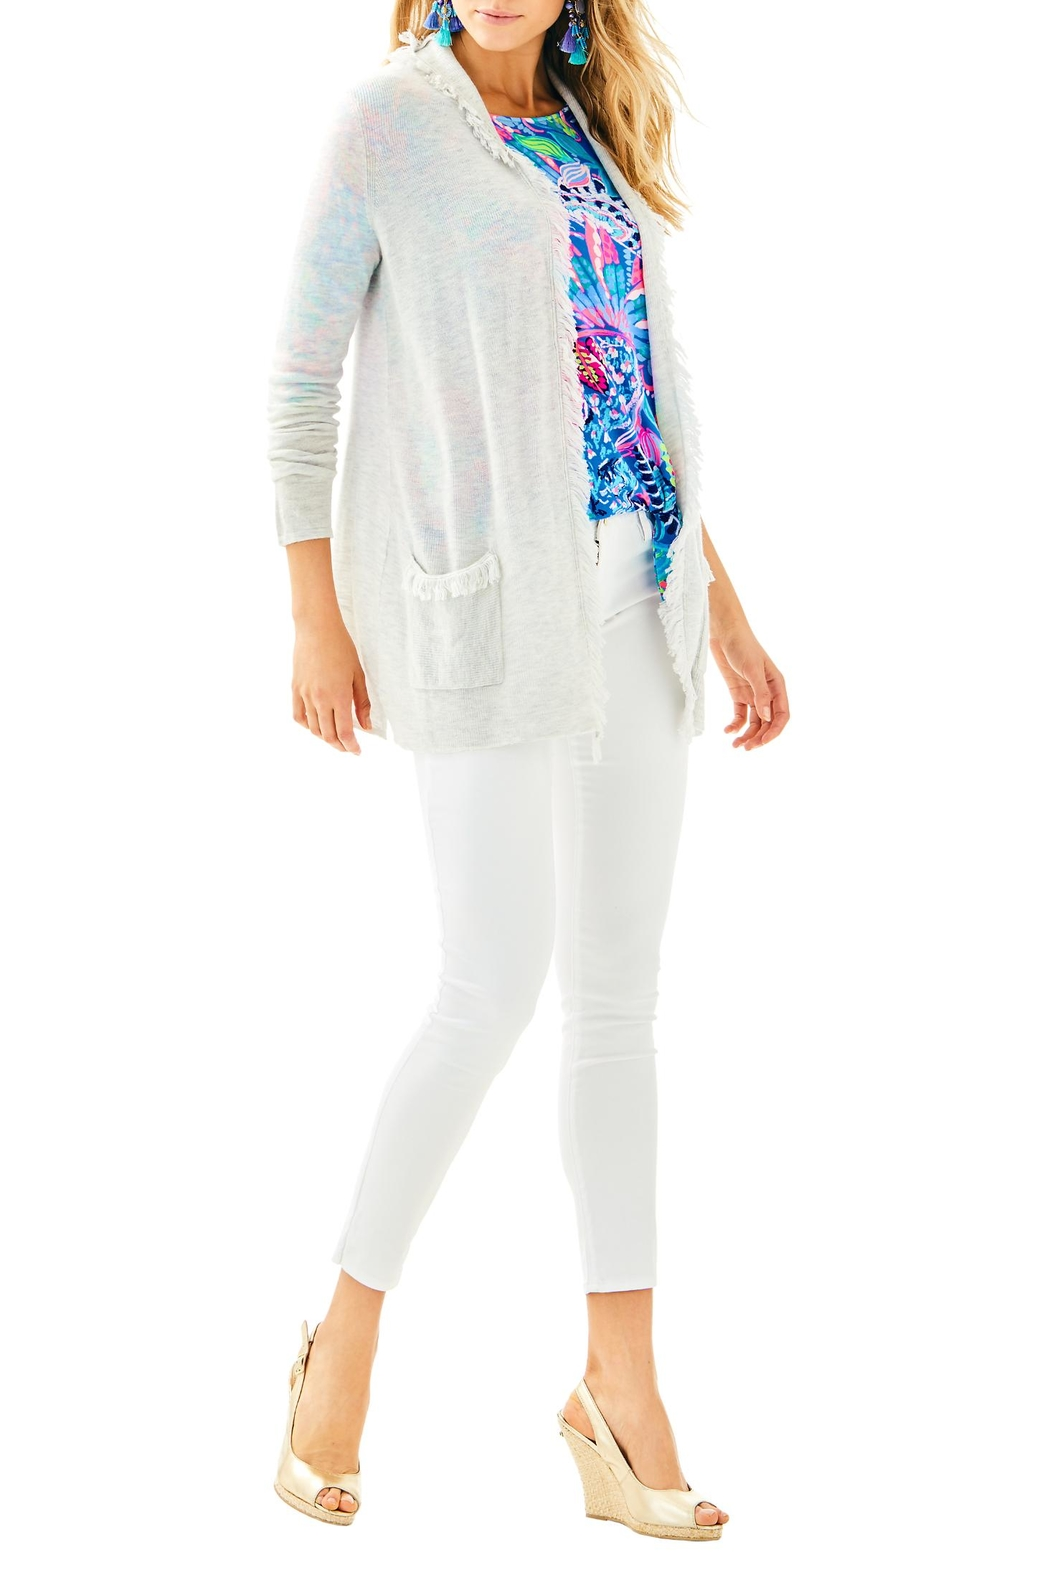 Lilly Pulitzer Bridget Cardigan - Side Cropped Image